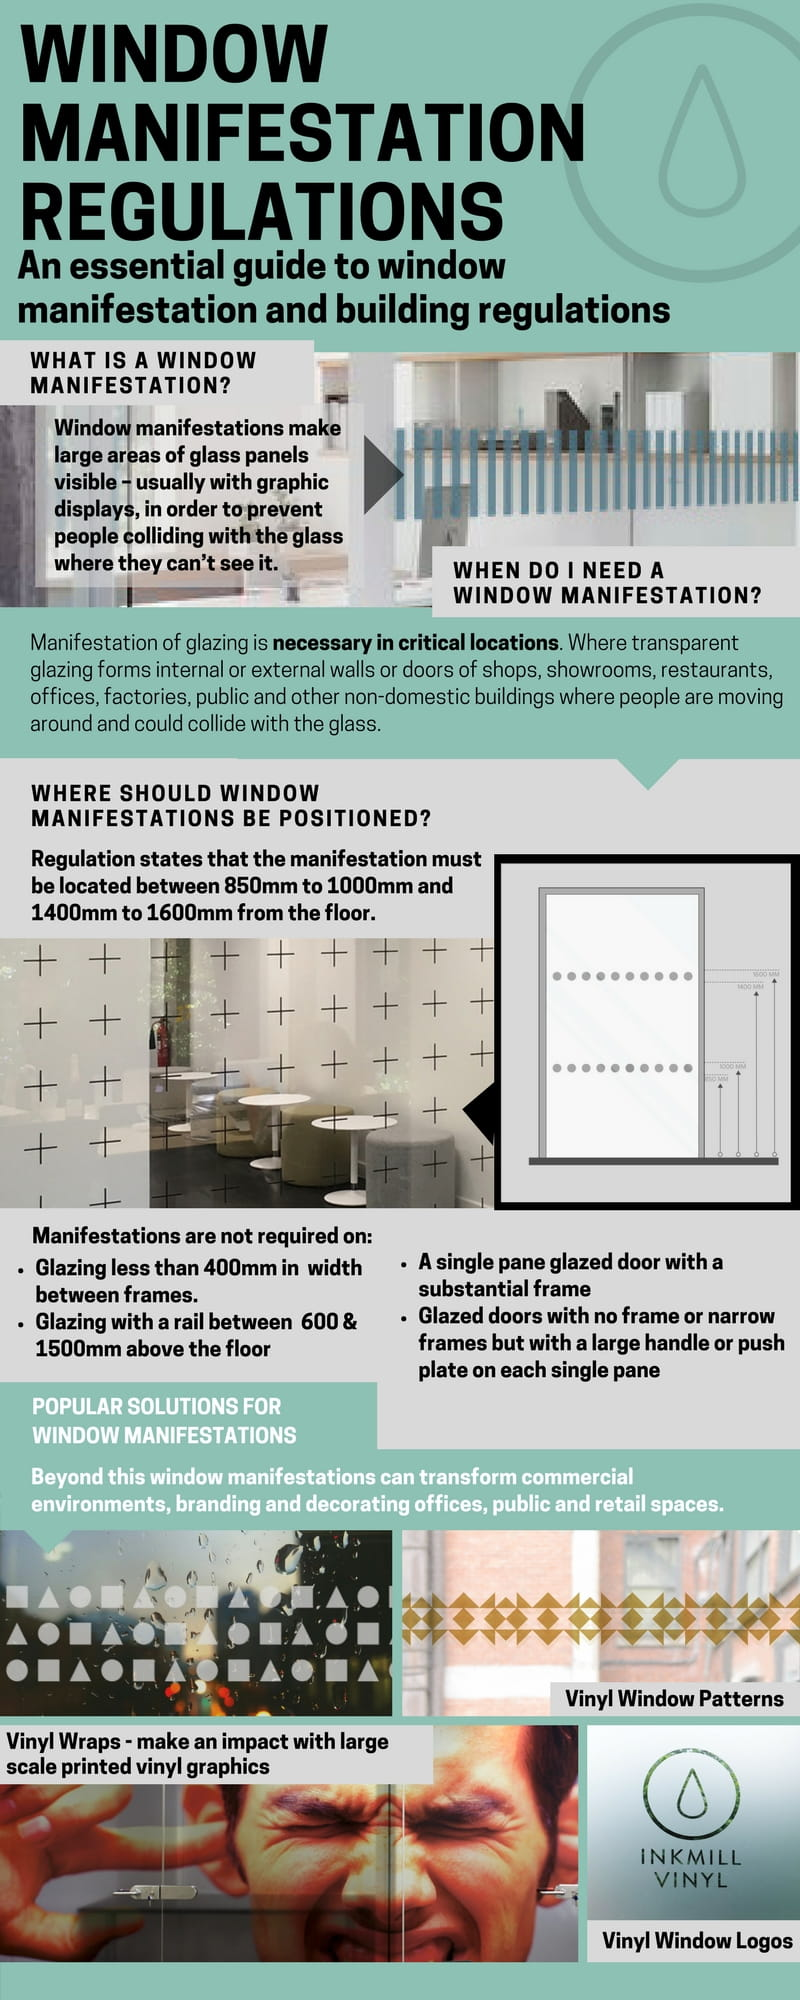 Window manifestation regulations infographic